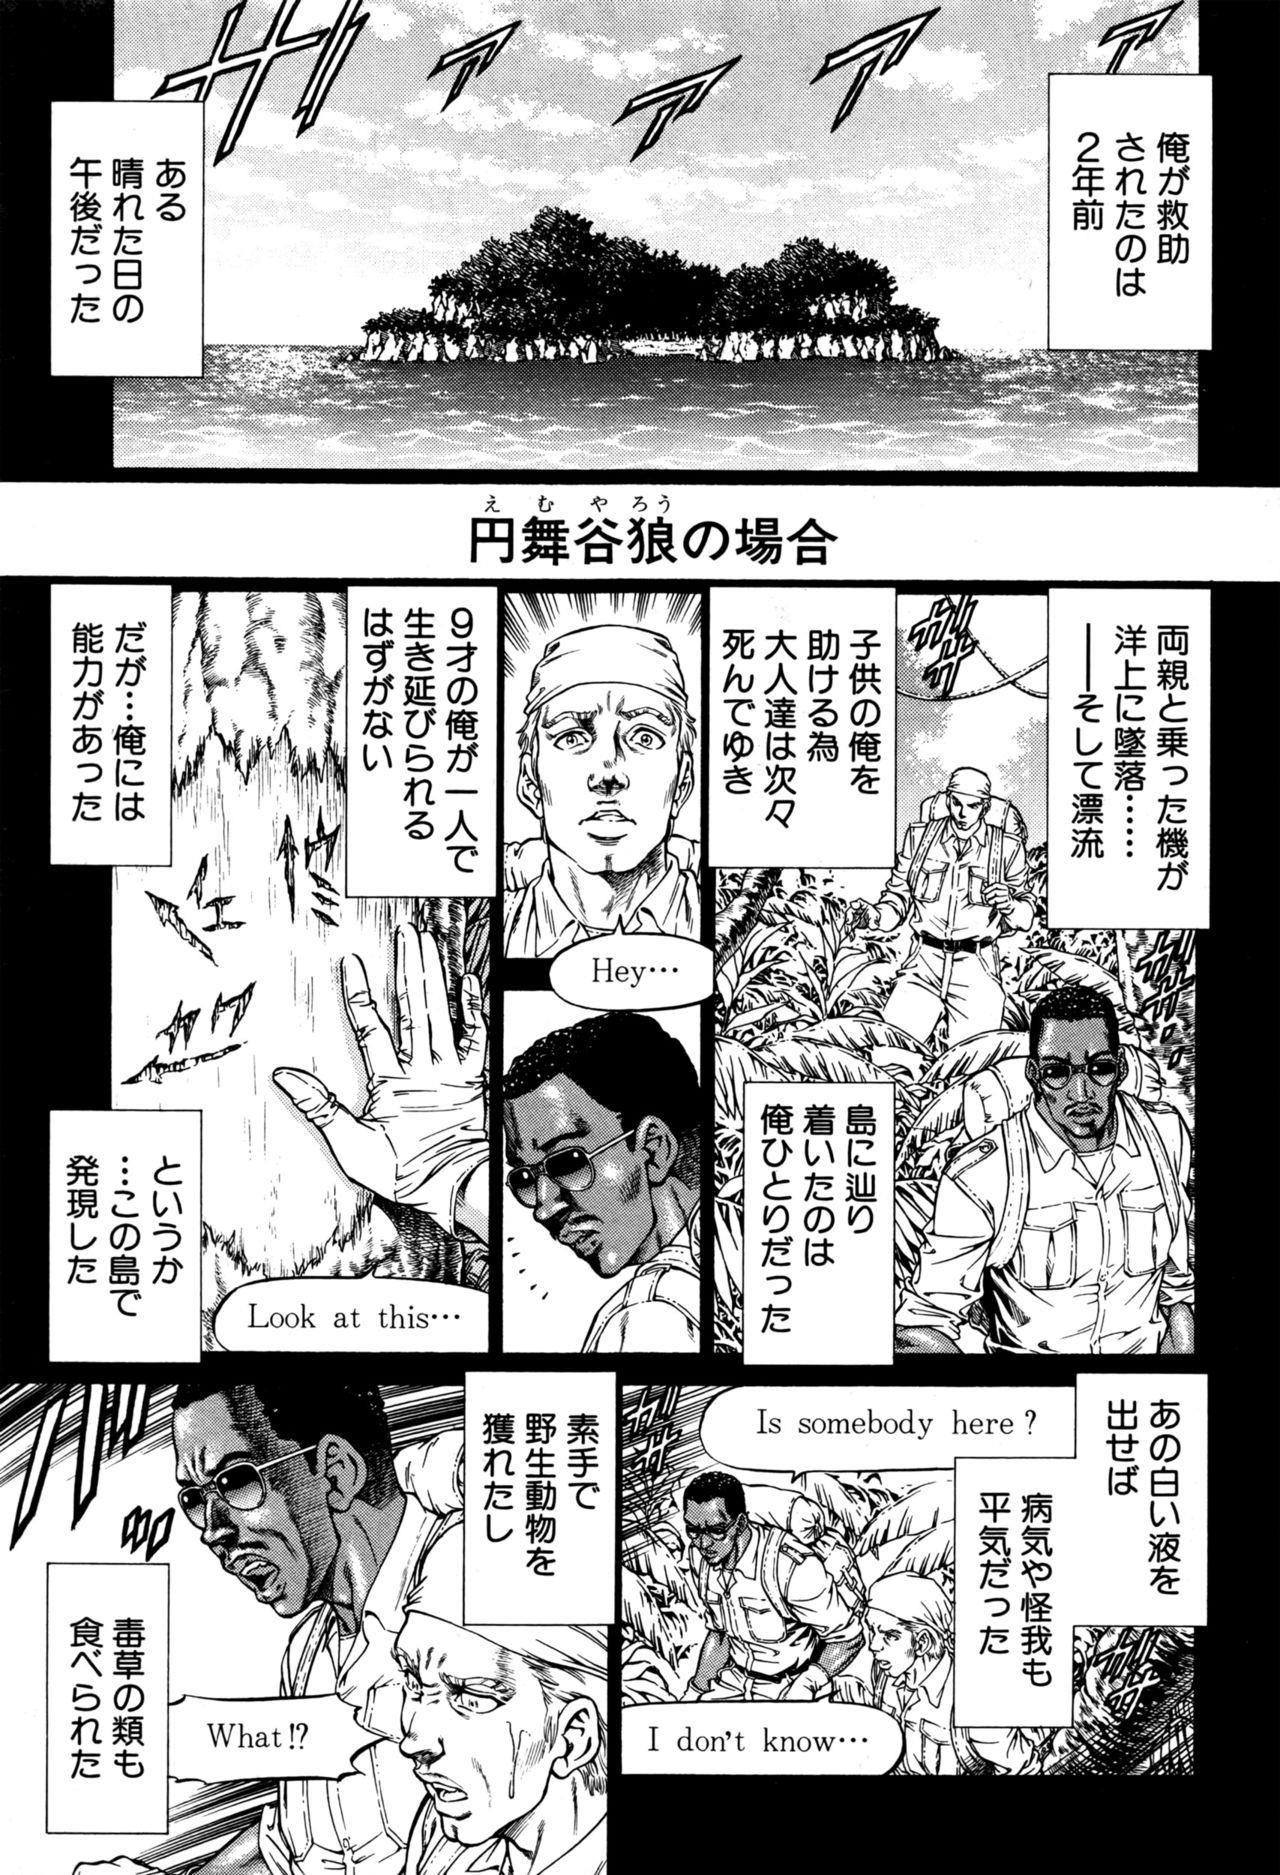 BUSTER COMIC 2016-09 165